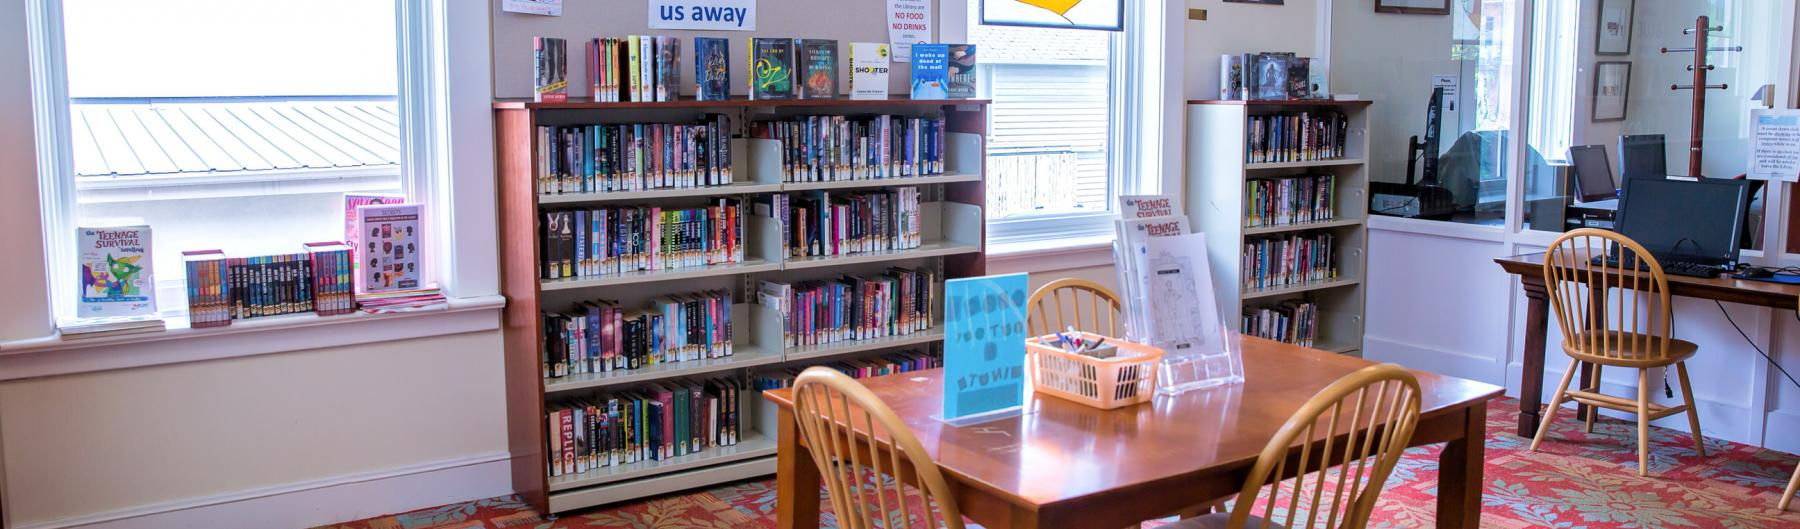 Port Hope Public Library - Book shelves and reading area